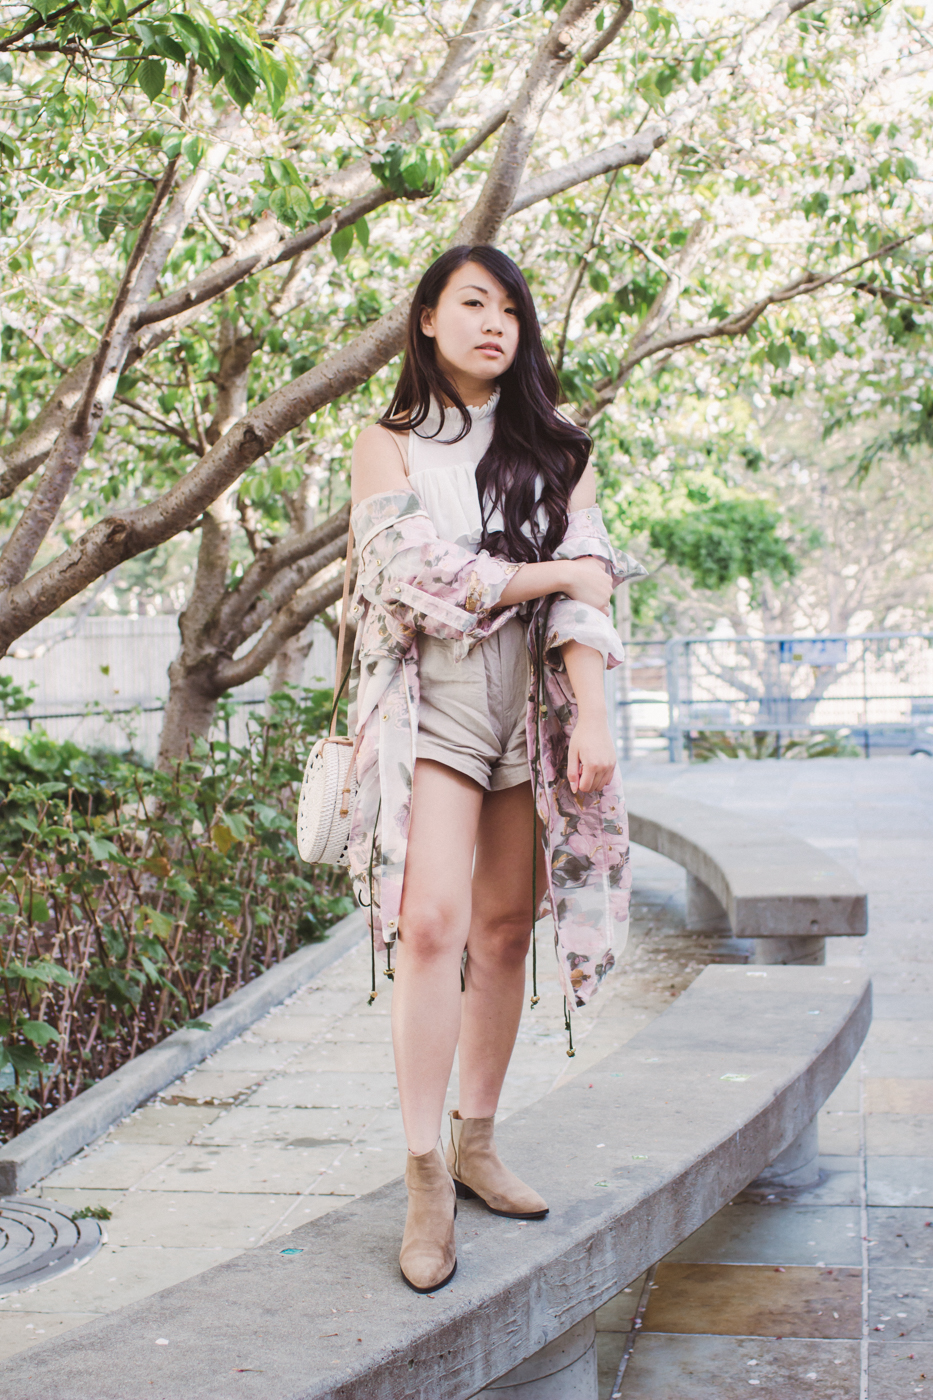 Posse Ducky Shorts | The Chic Diary